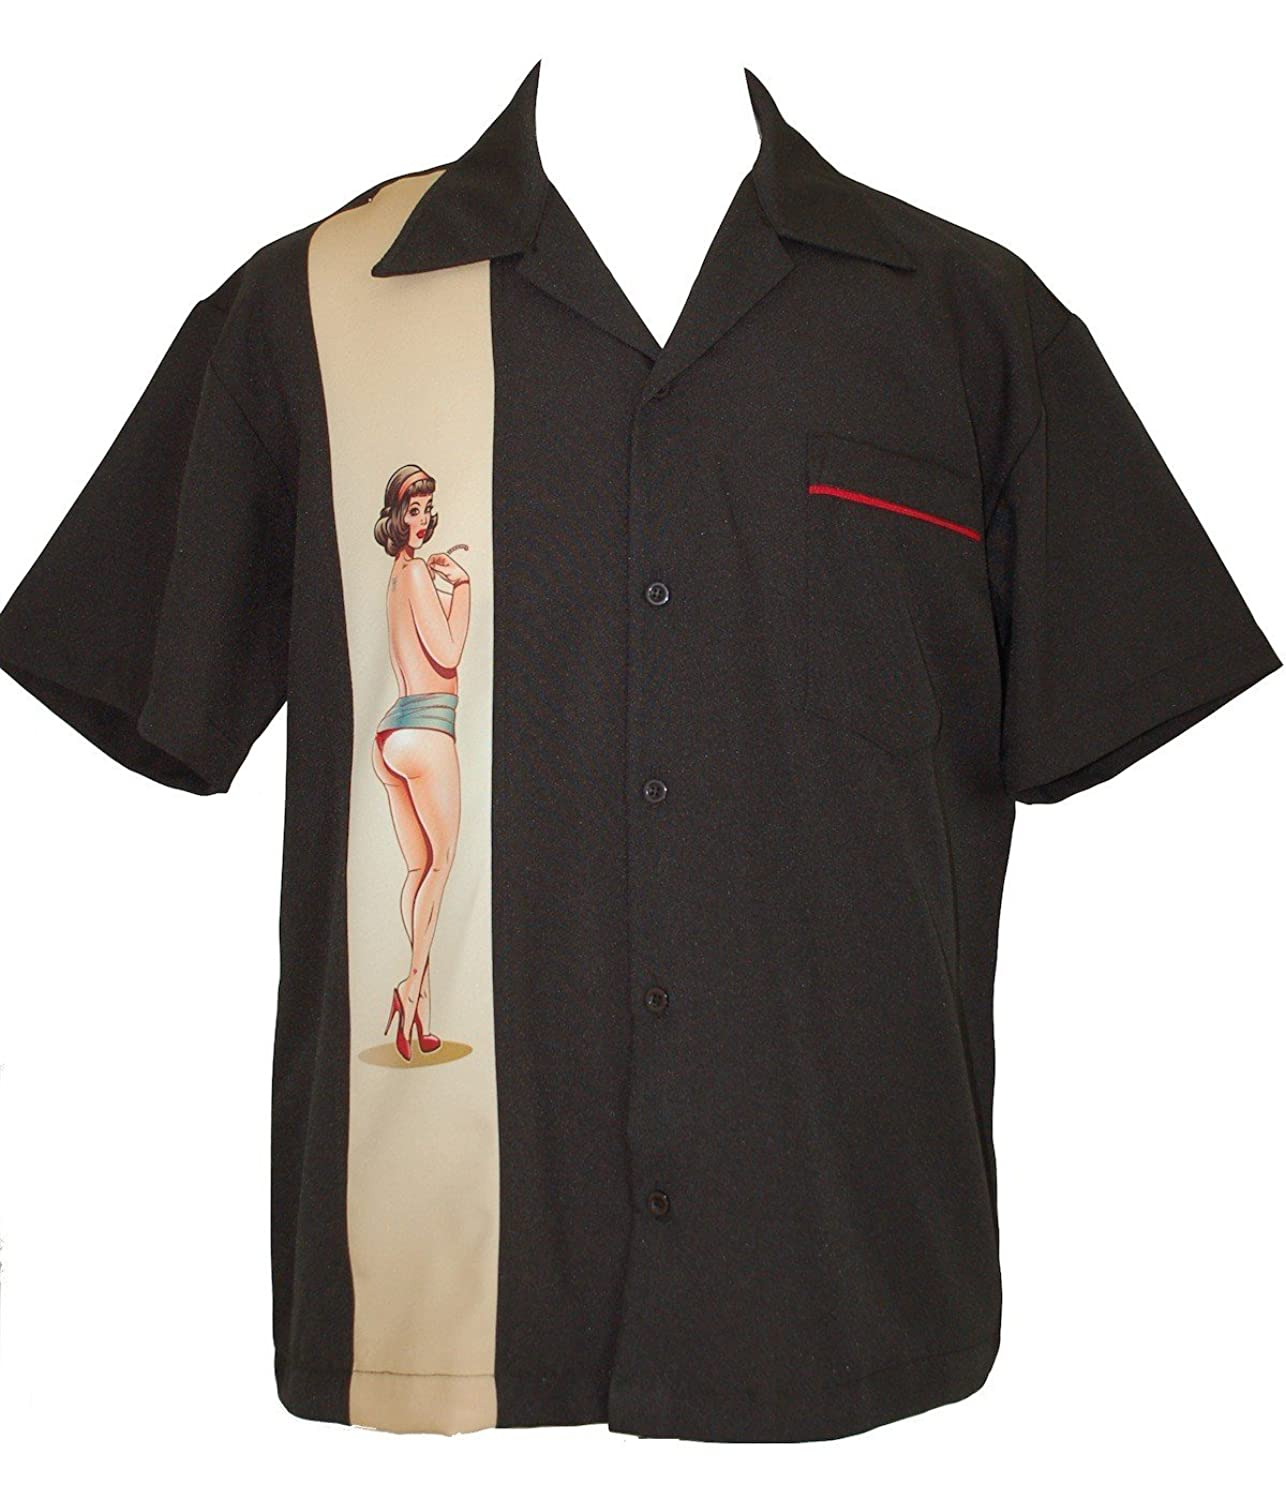 1950s Men's Costumes: Greaser, Elvis, Rockabilly, Prom PinUp Girl Mens Bowling Lounge Retro Shirt ~ BeRetro Classy PinUp Girl $65.95 AT vintagedancer.com